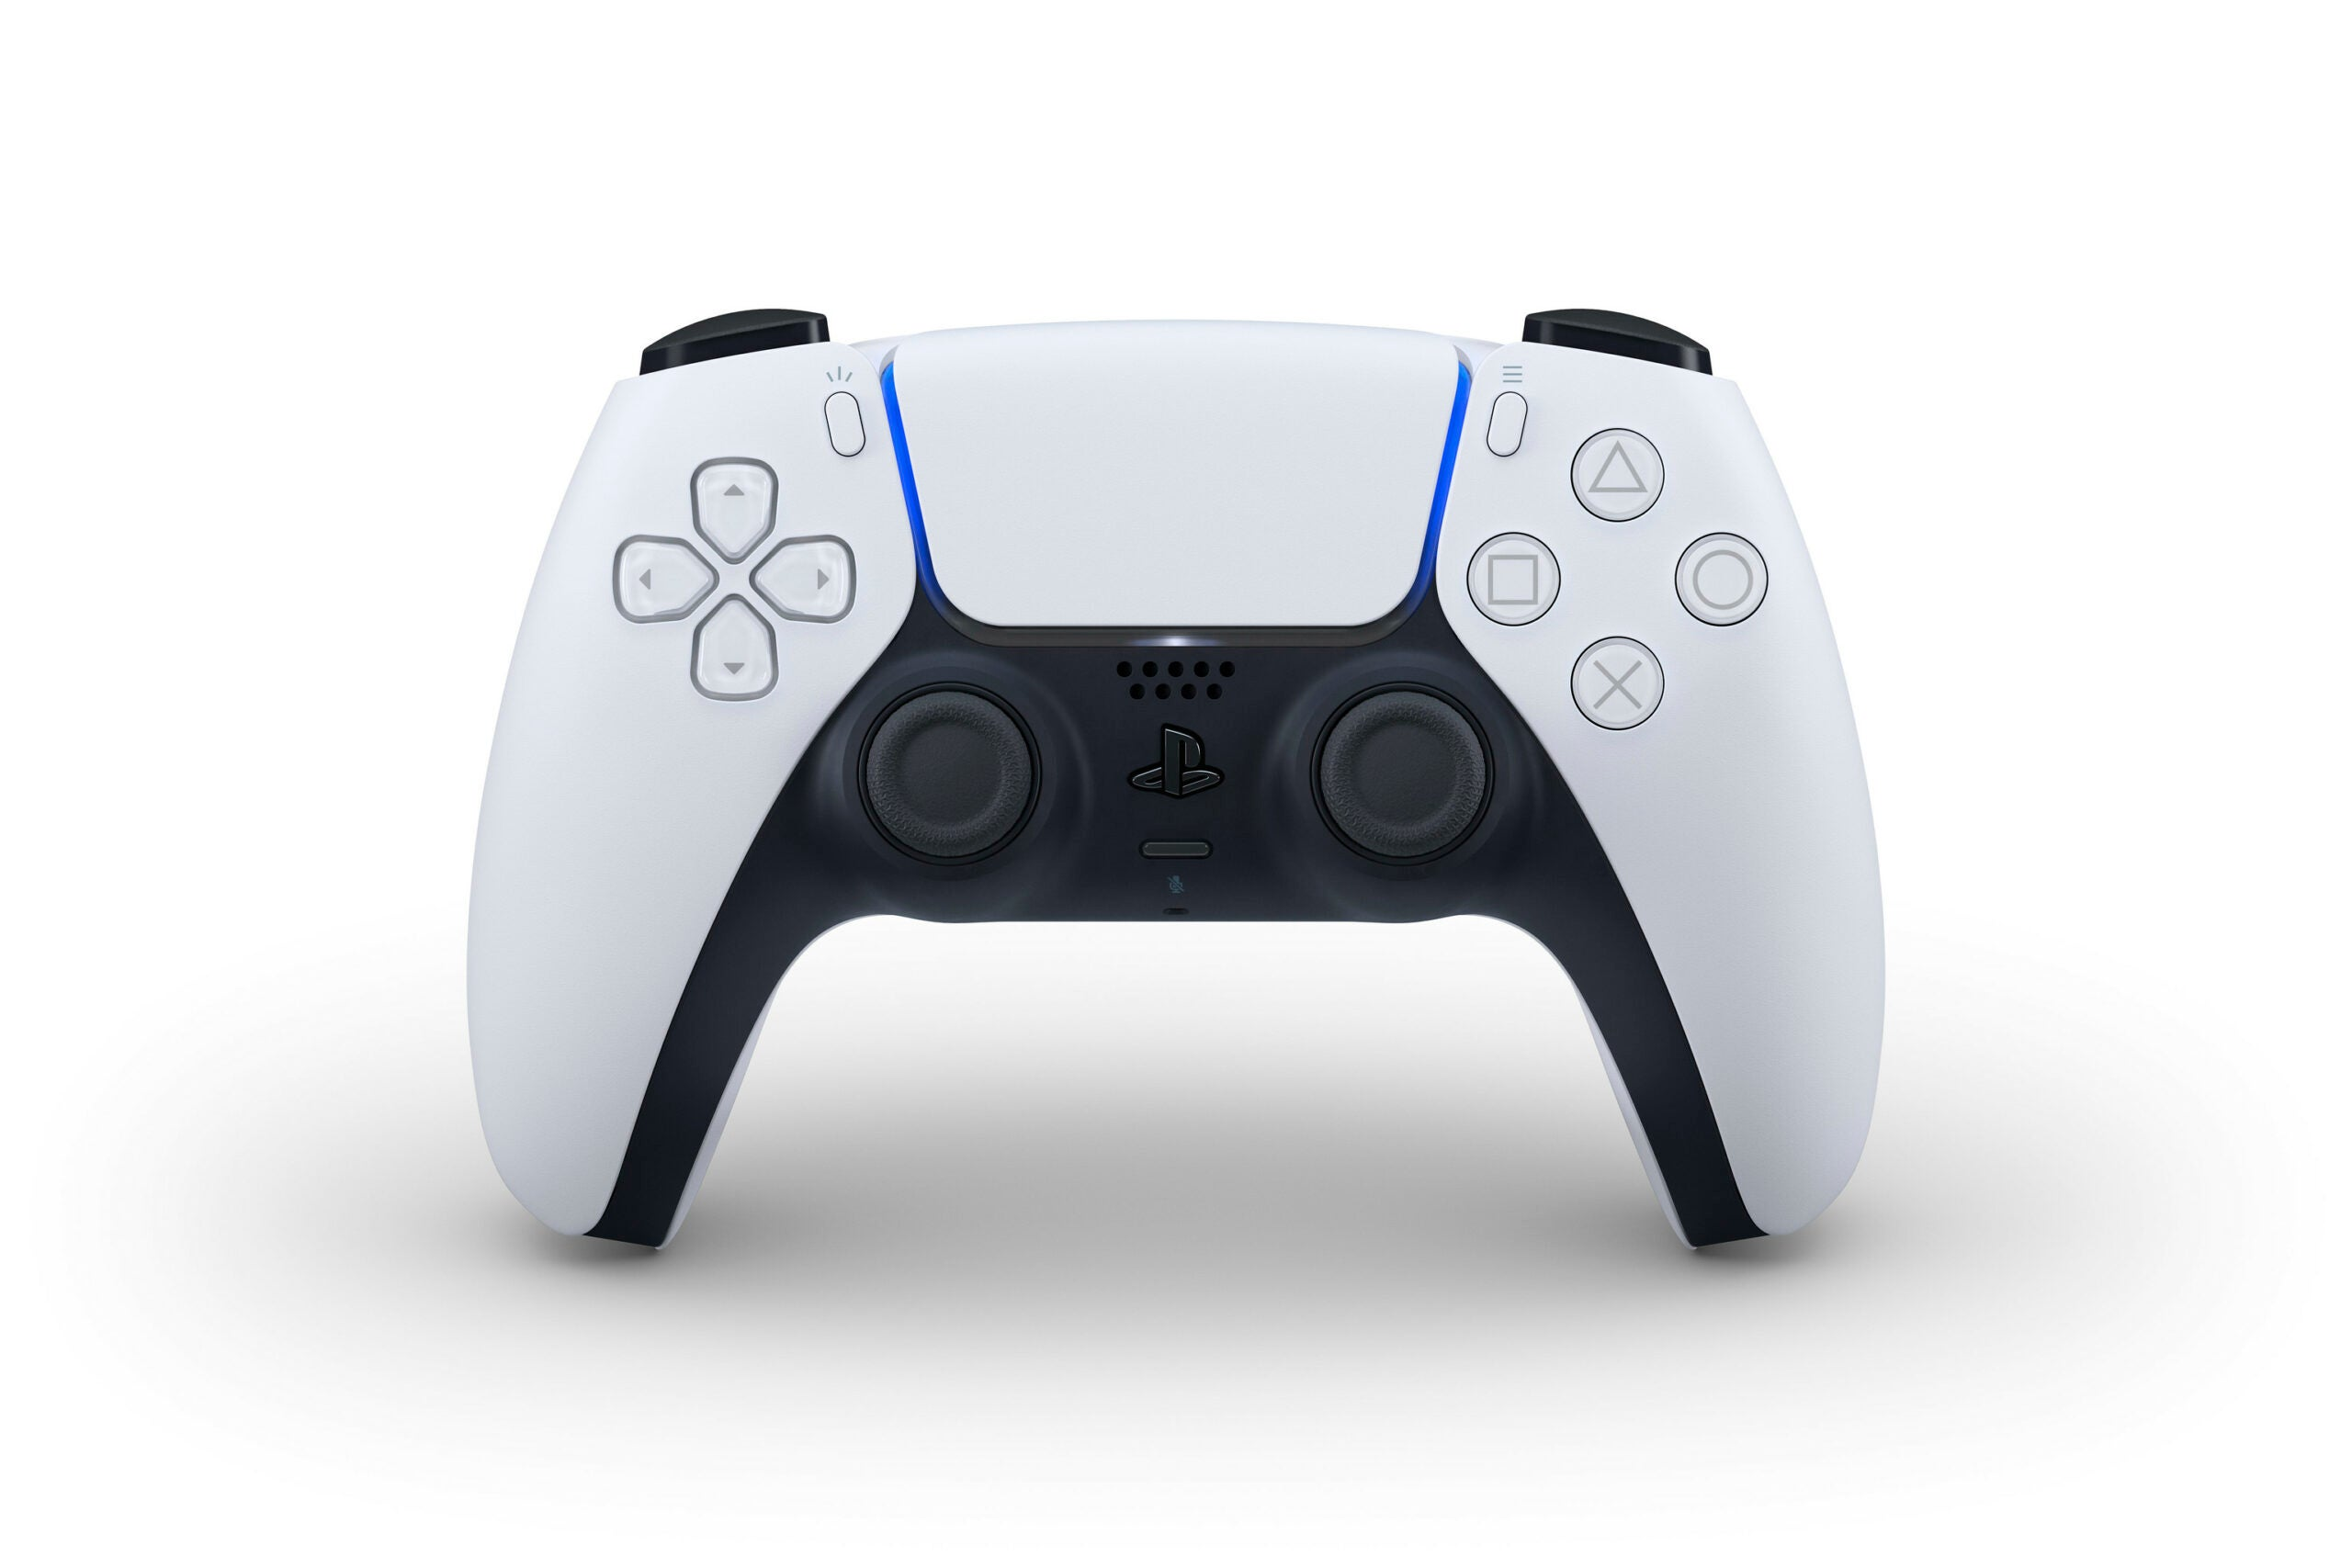 PlayStation 5 controller.